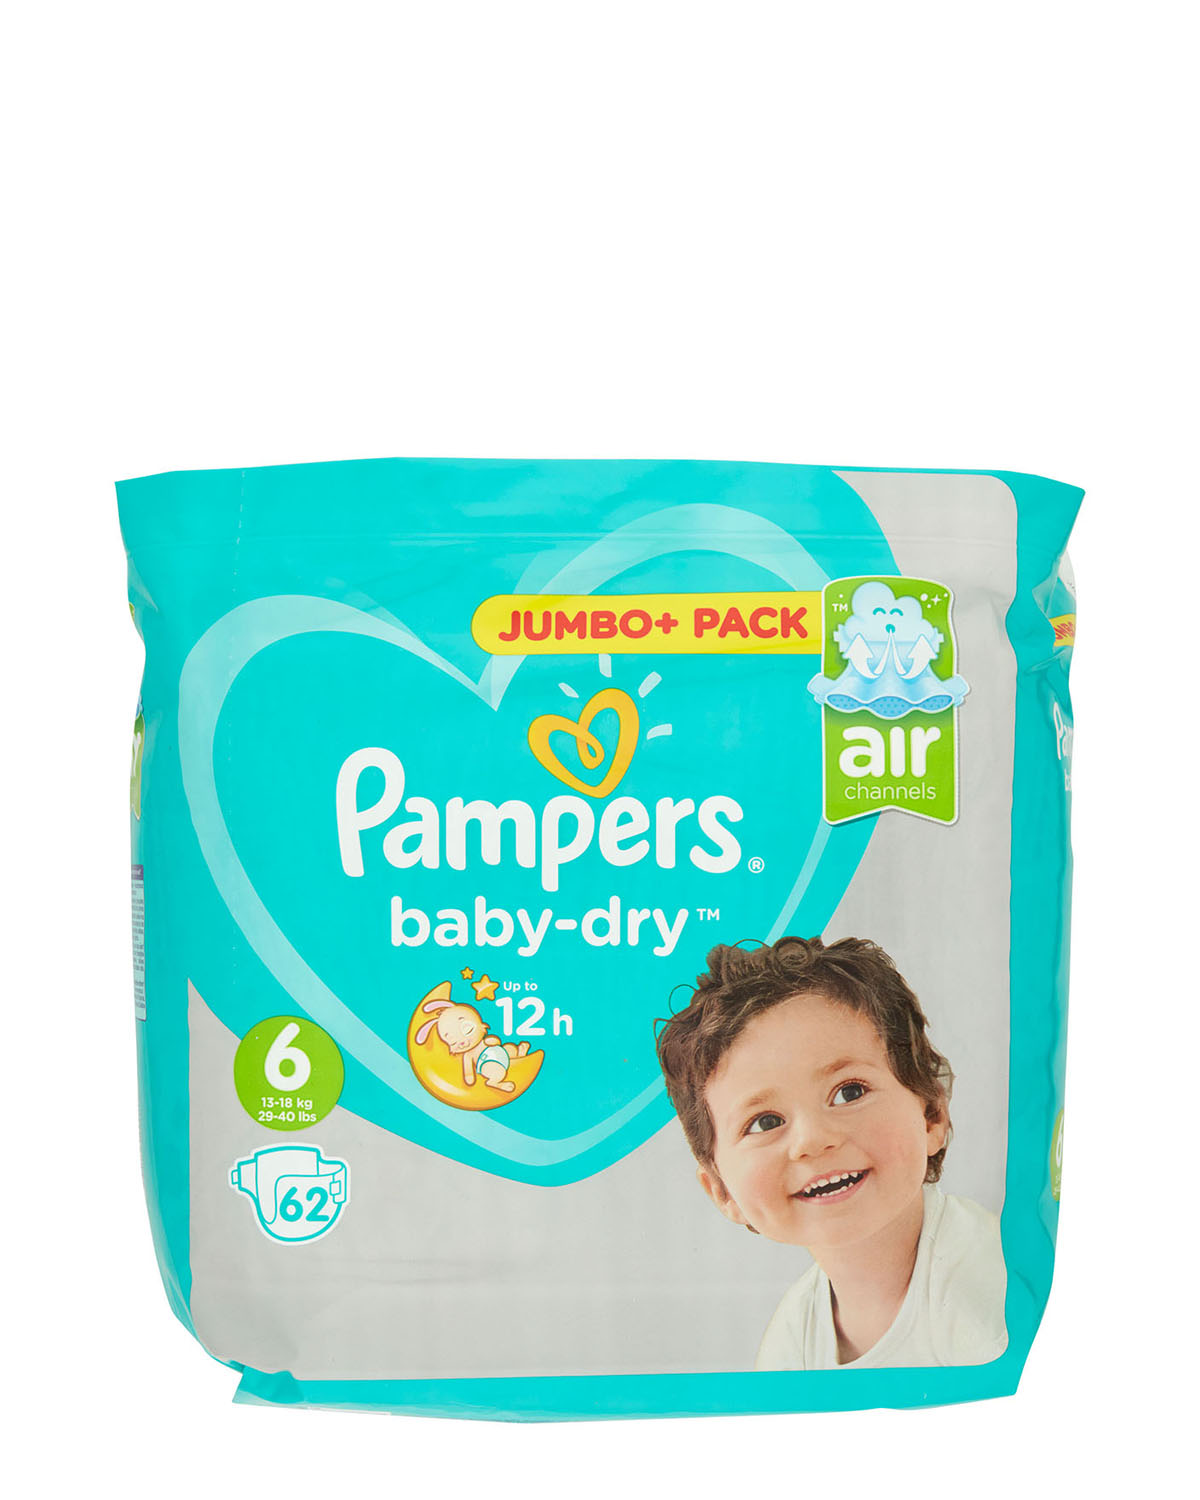 Pampers Baby Dry Size 6 Jumbo Plus - 62 Nappies thumbnail